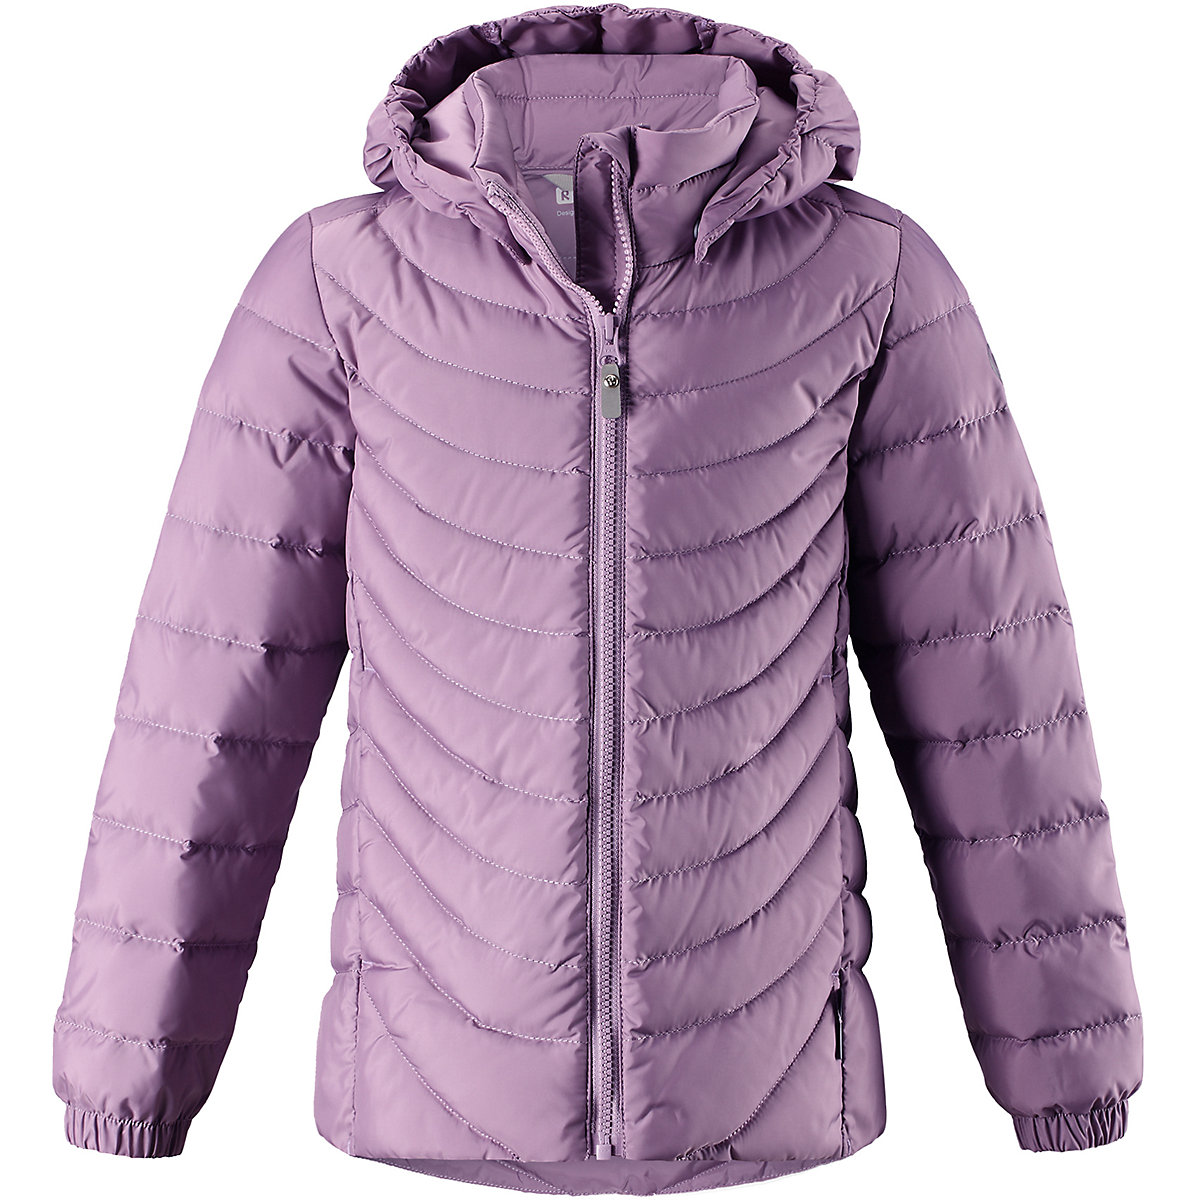 REIMA Jackets 8637166 for girls polyester winter  fur clothes girl jackets